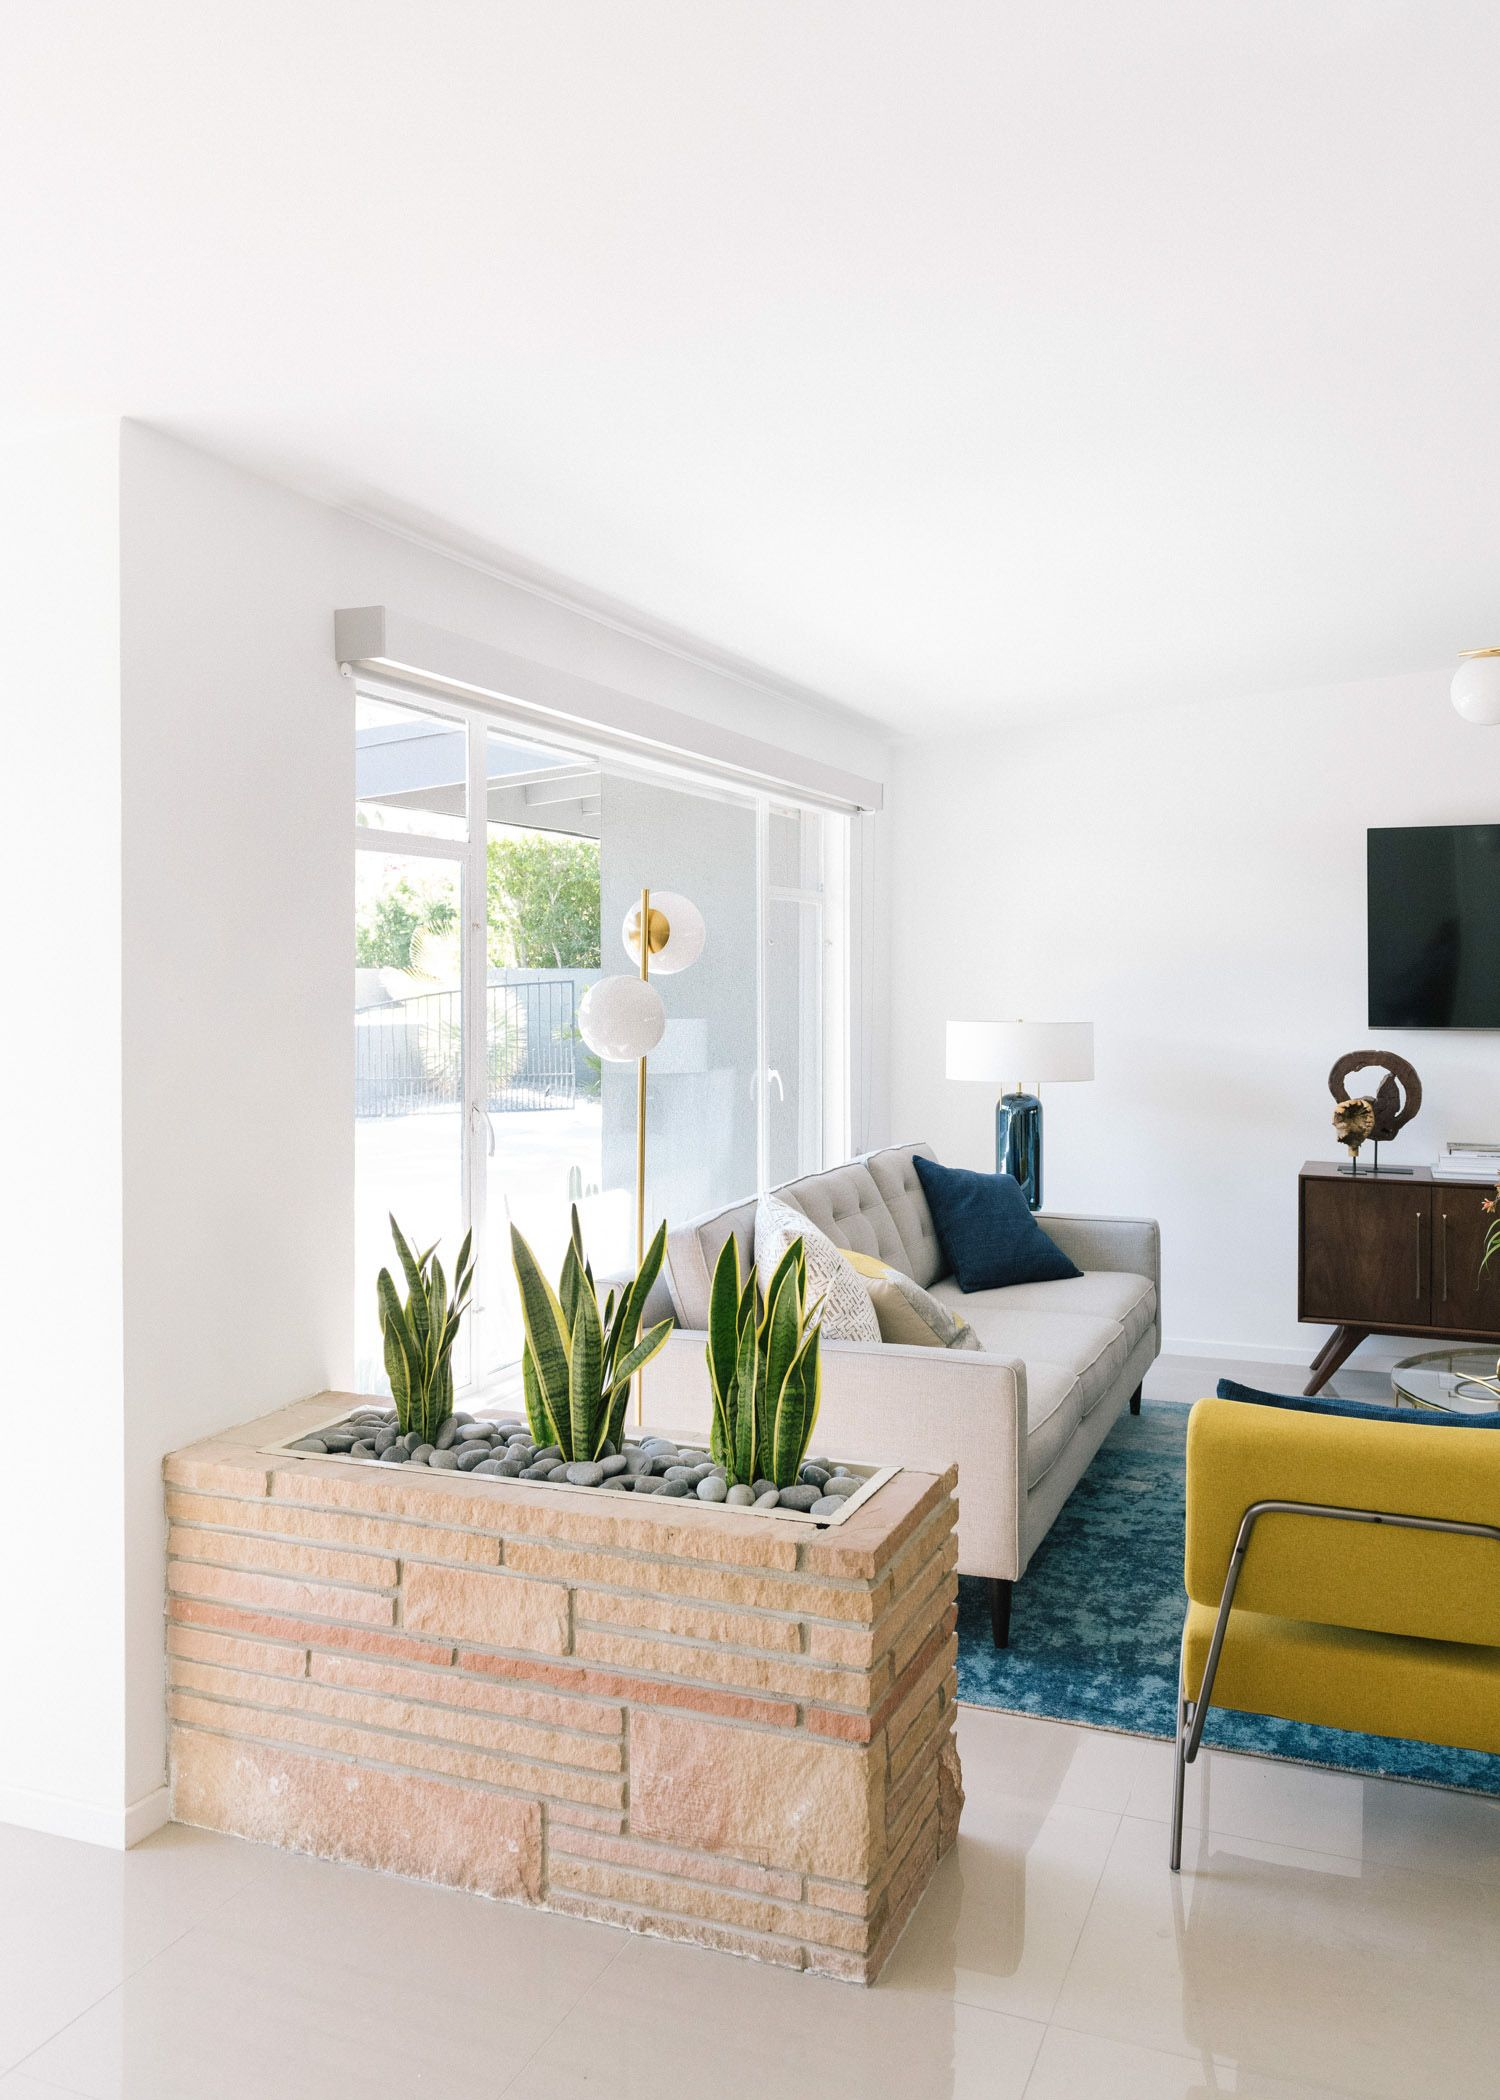 Living The Modern Life In Palm Springs Front Main Spring Living Room Palm Springs Interior Design Palm Springs Decor #palm #springs #living #room